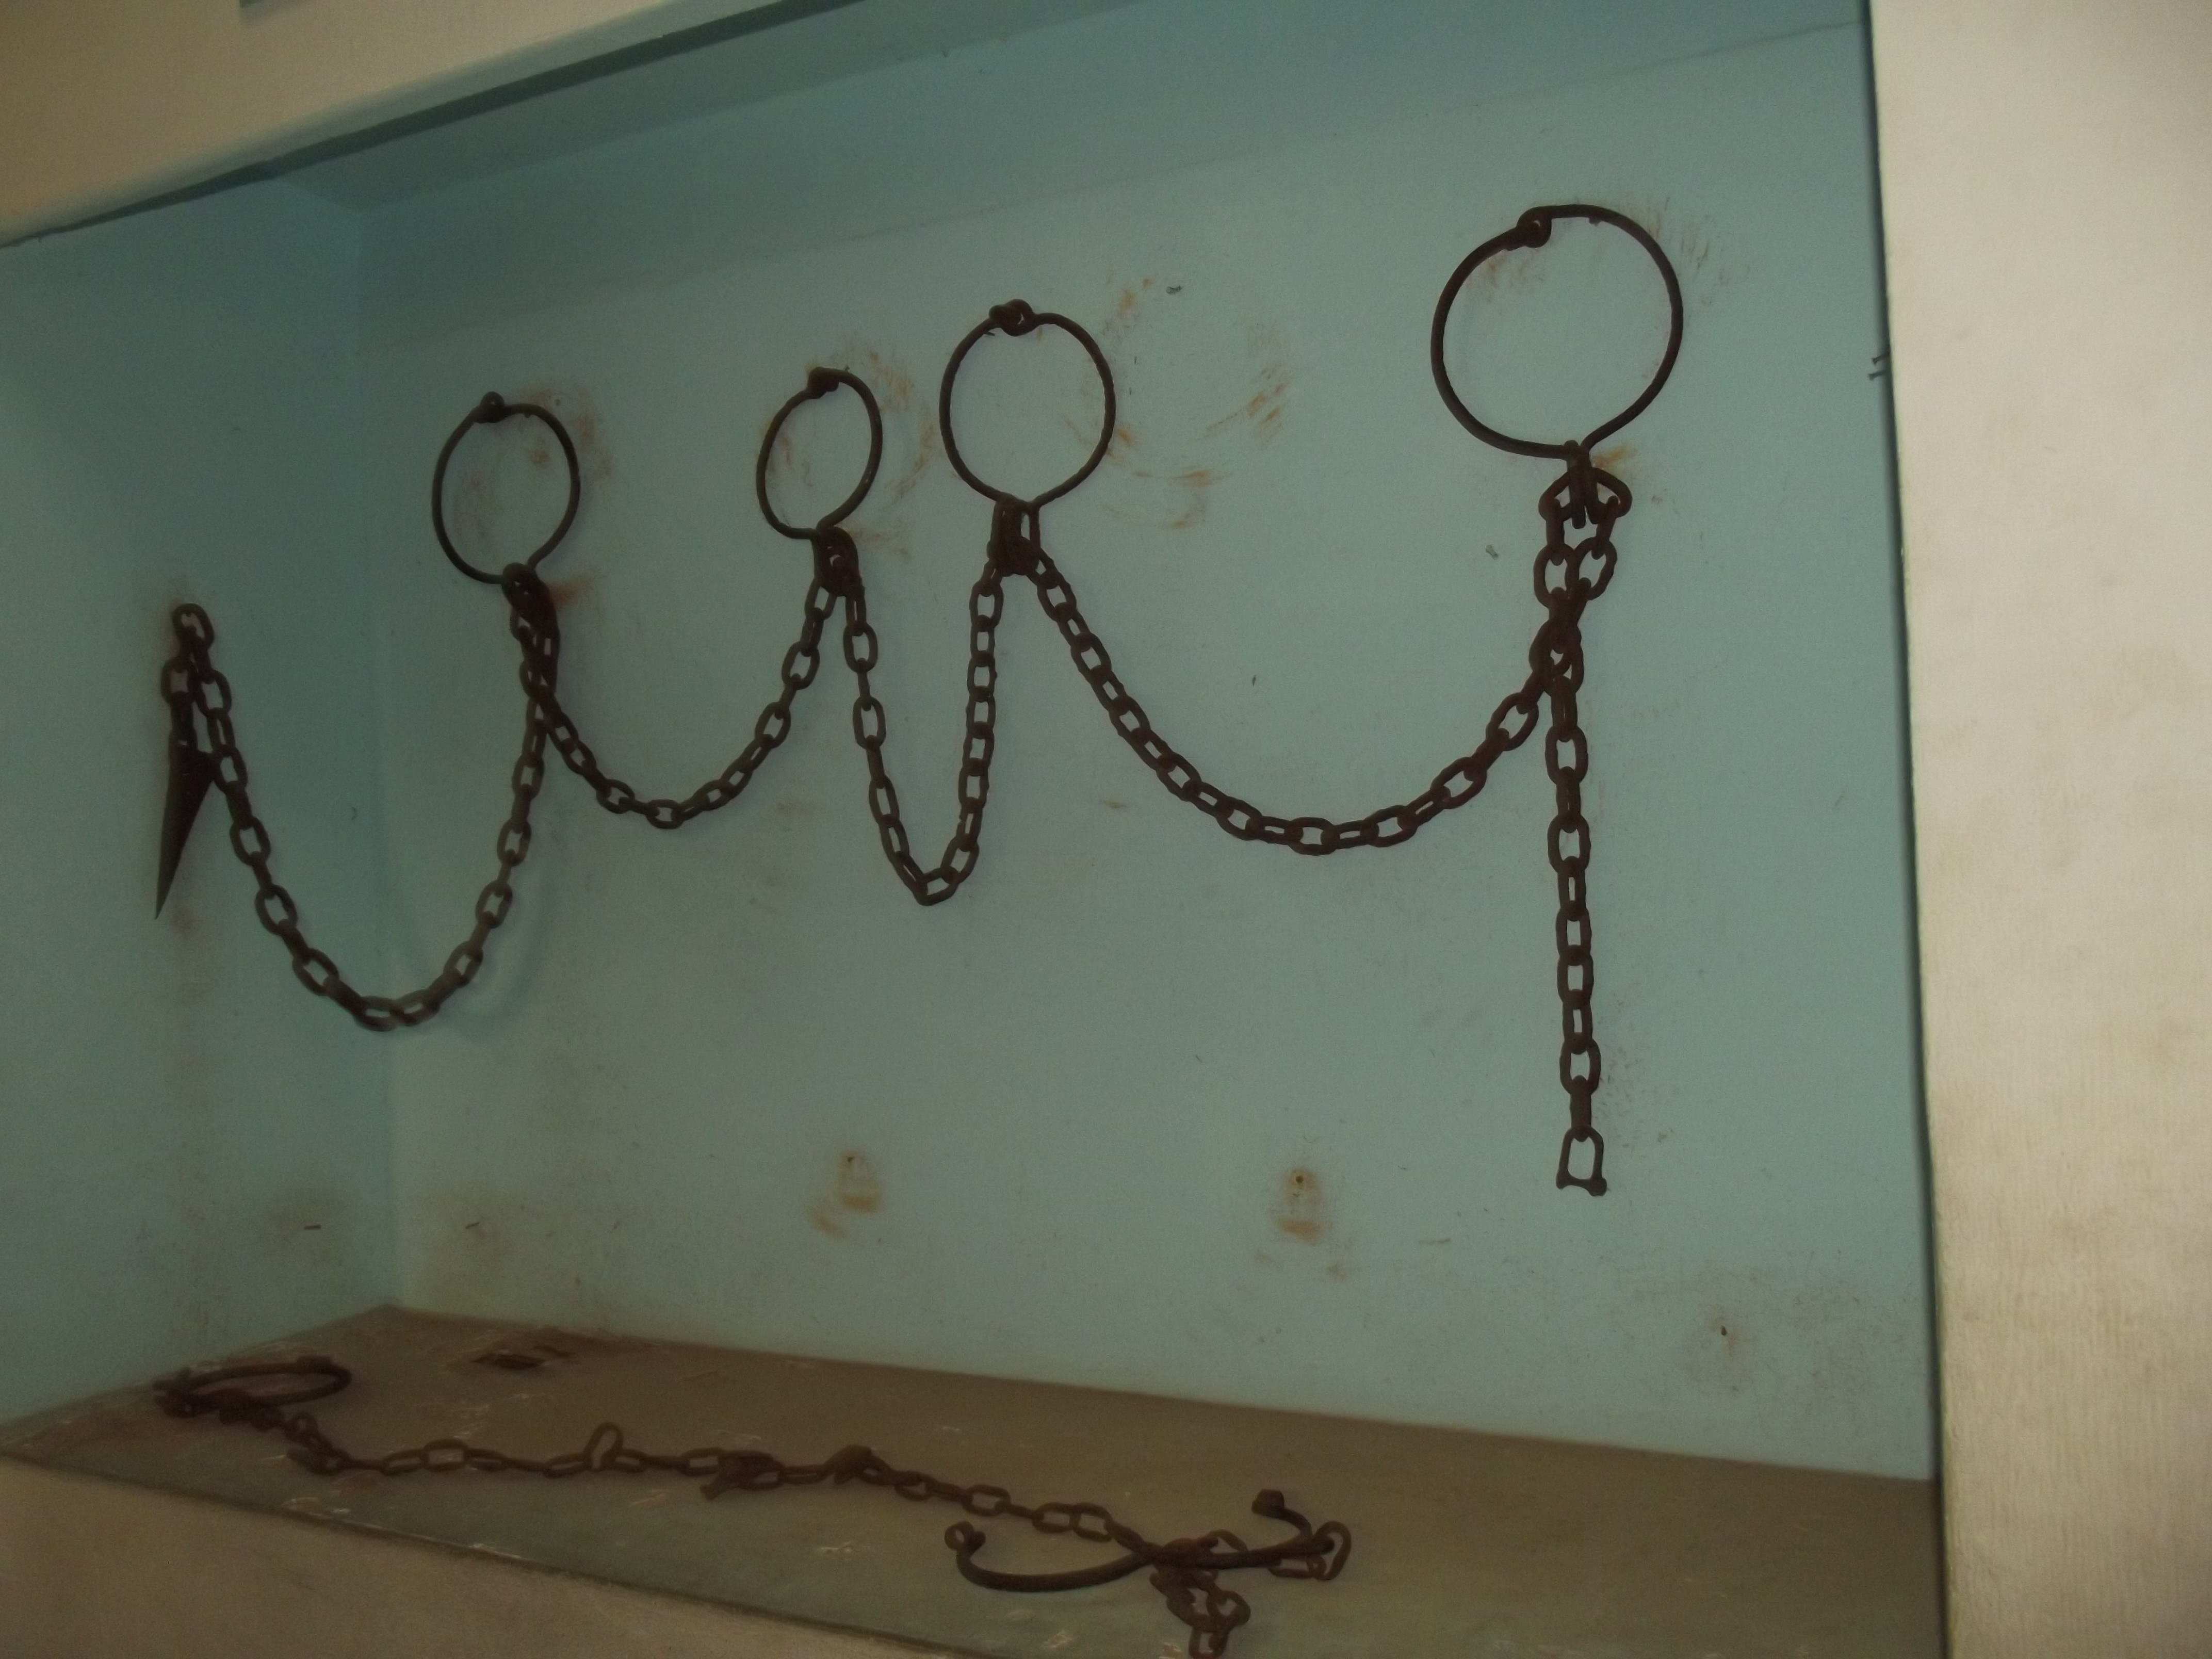 File:CHAINS USED DURING THE SLAVE TRADE. SLAVE RELICS ...